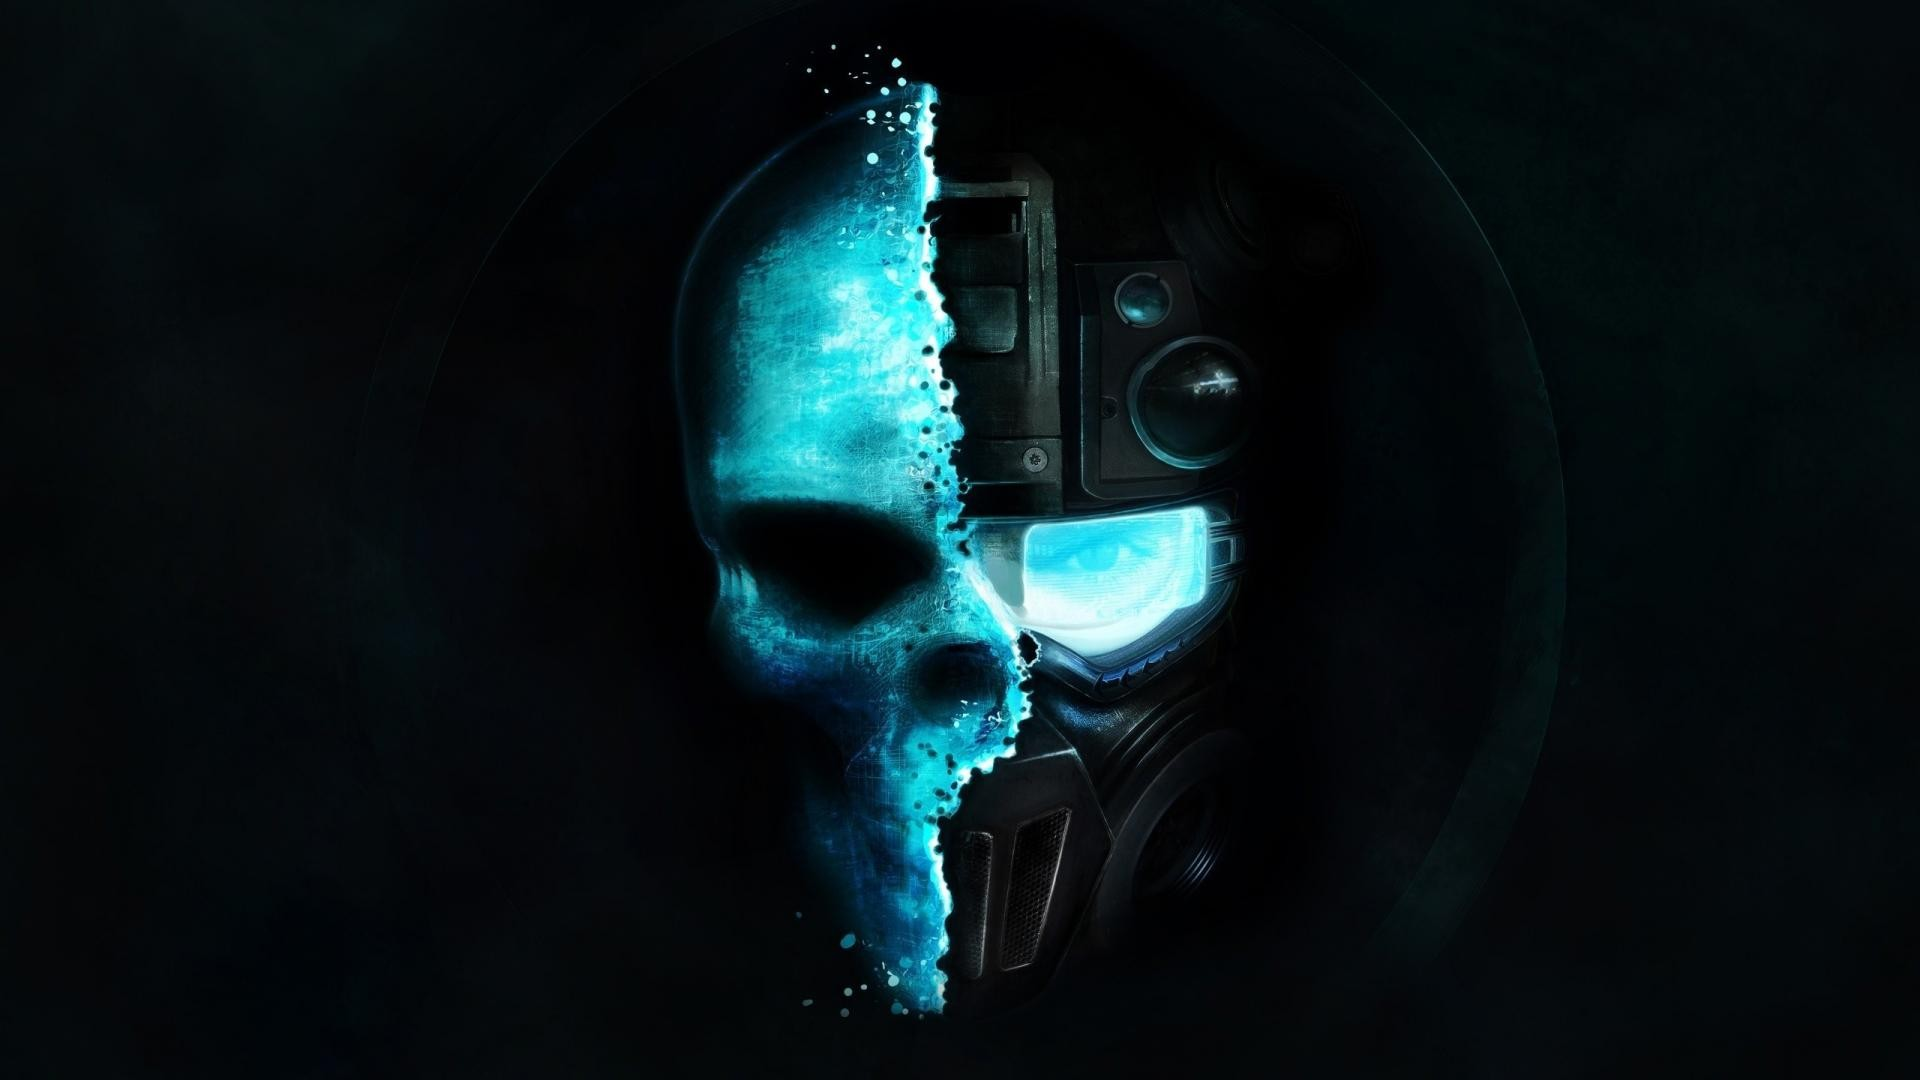 1920x1080 download black and blue half skull hd wallpapers wallpaper for any of your devices from our